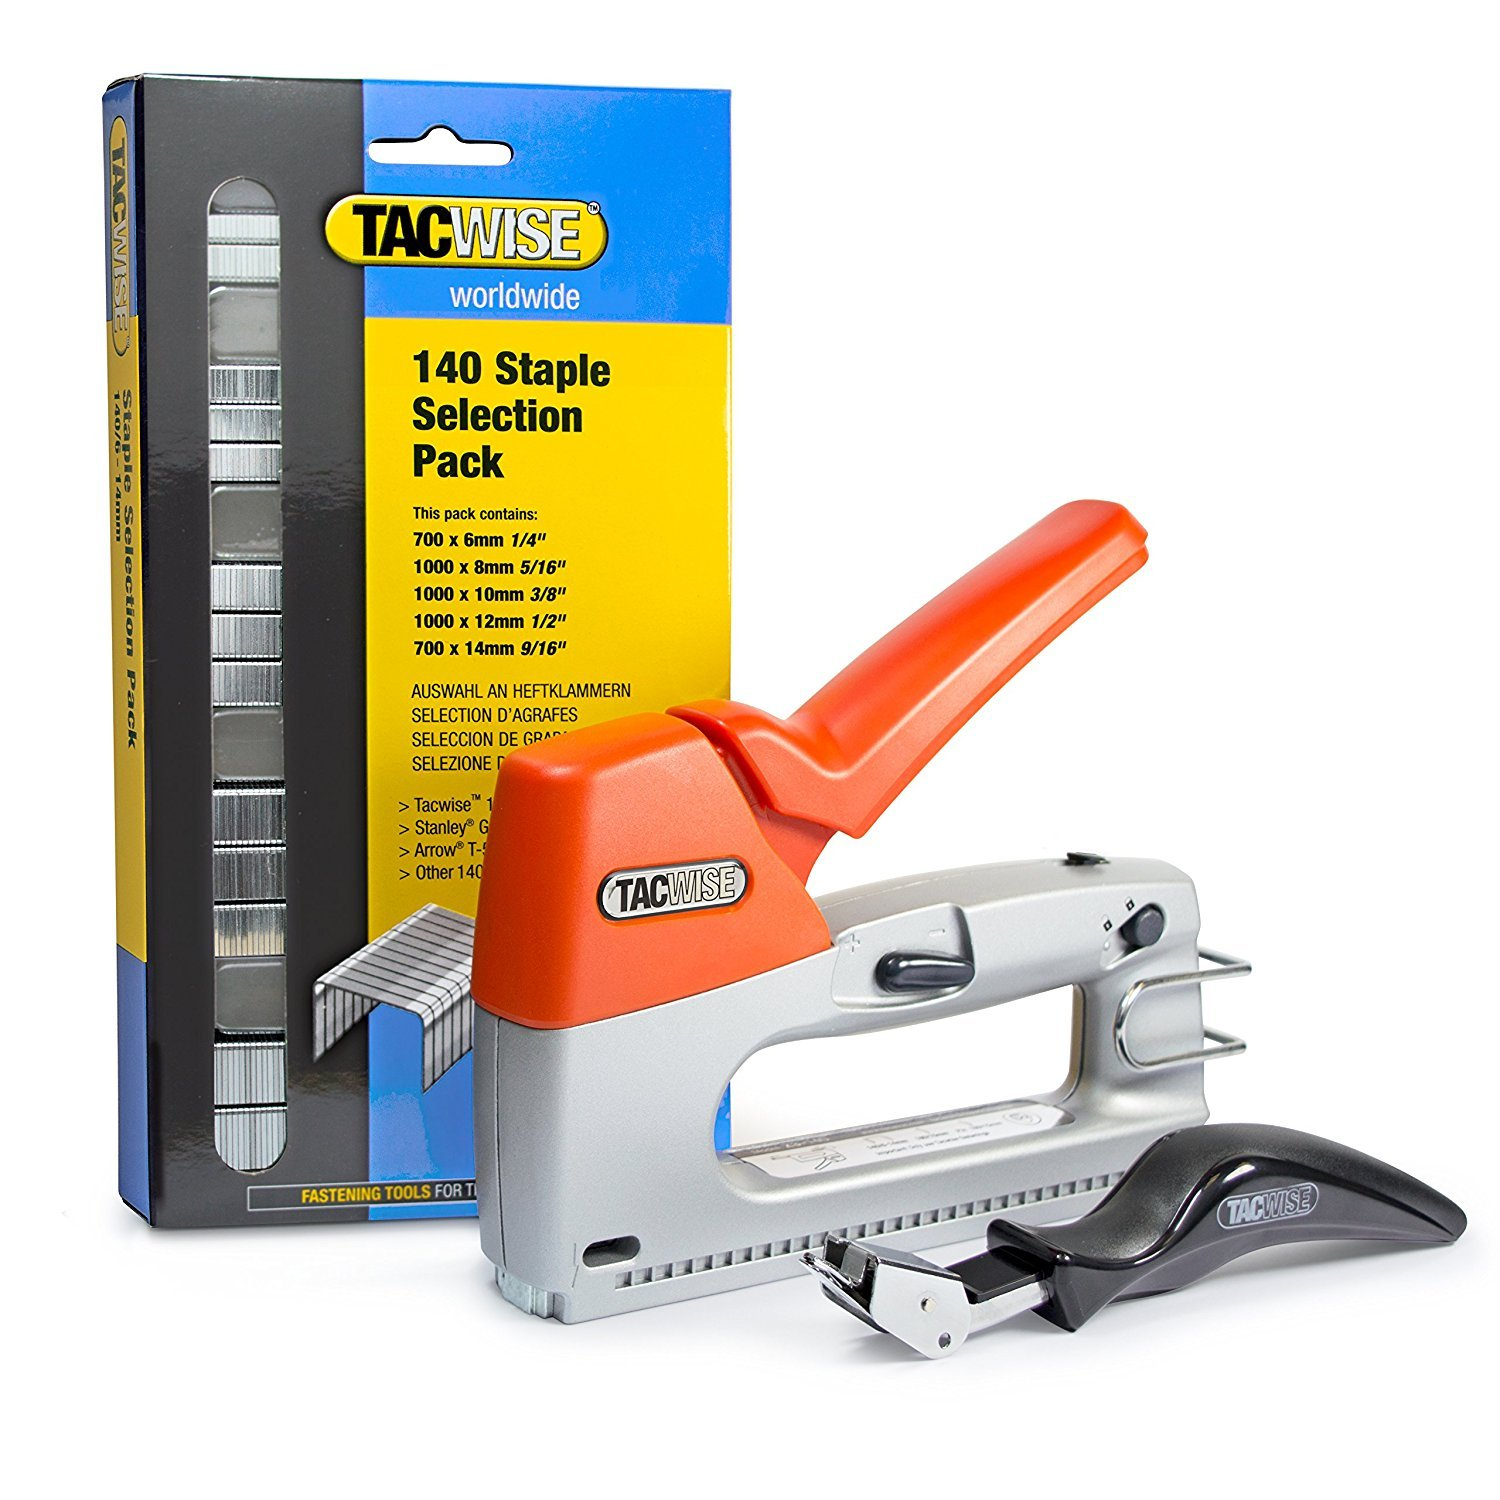 Tacwise 1263 Z3-140 Staple Gun Kit with Remover and 140 Staples Selection Pack (1263) by Tacwise